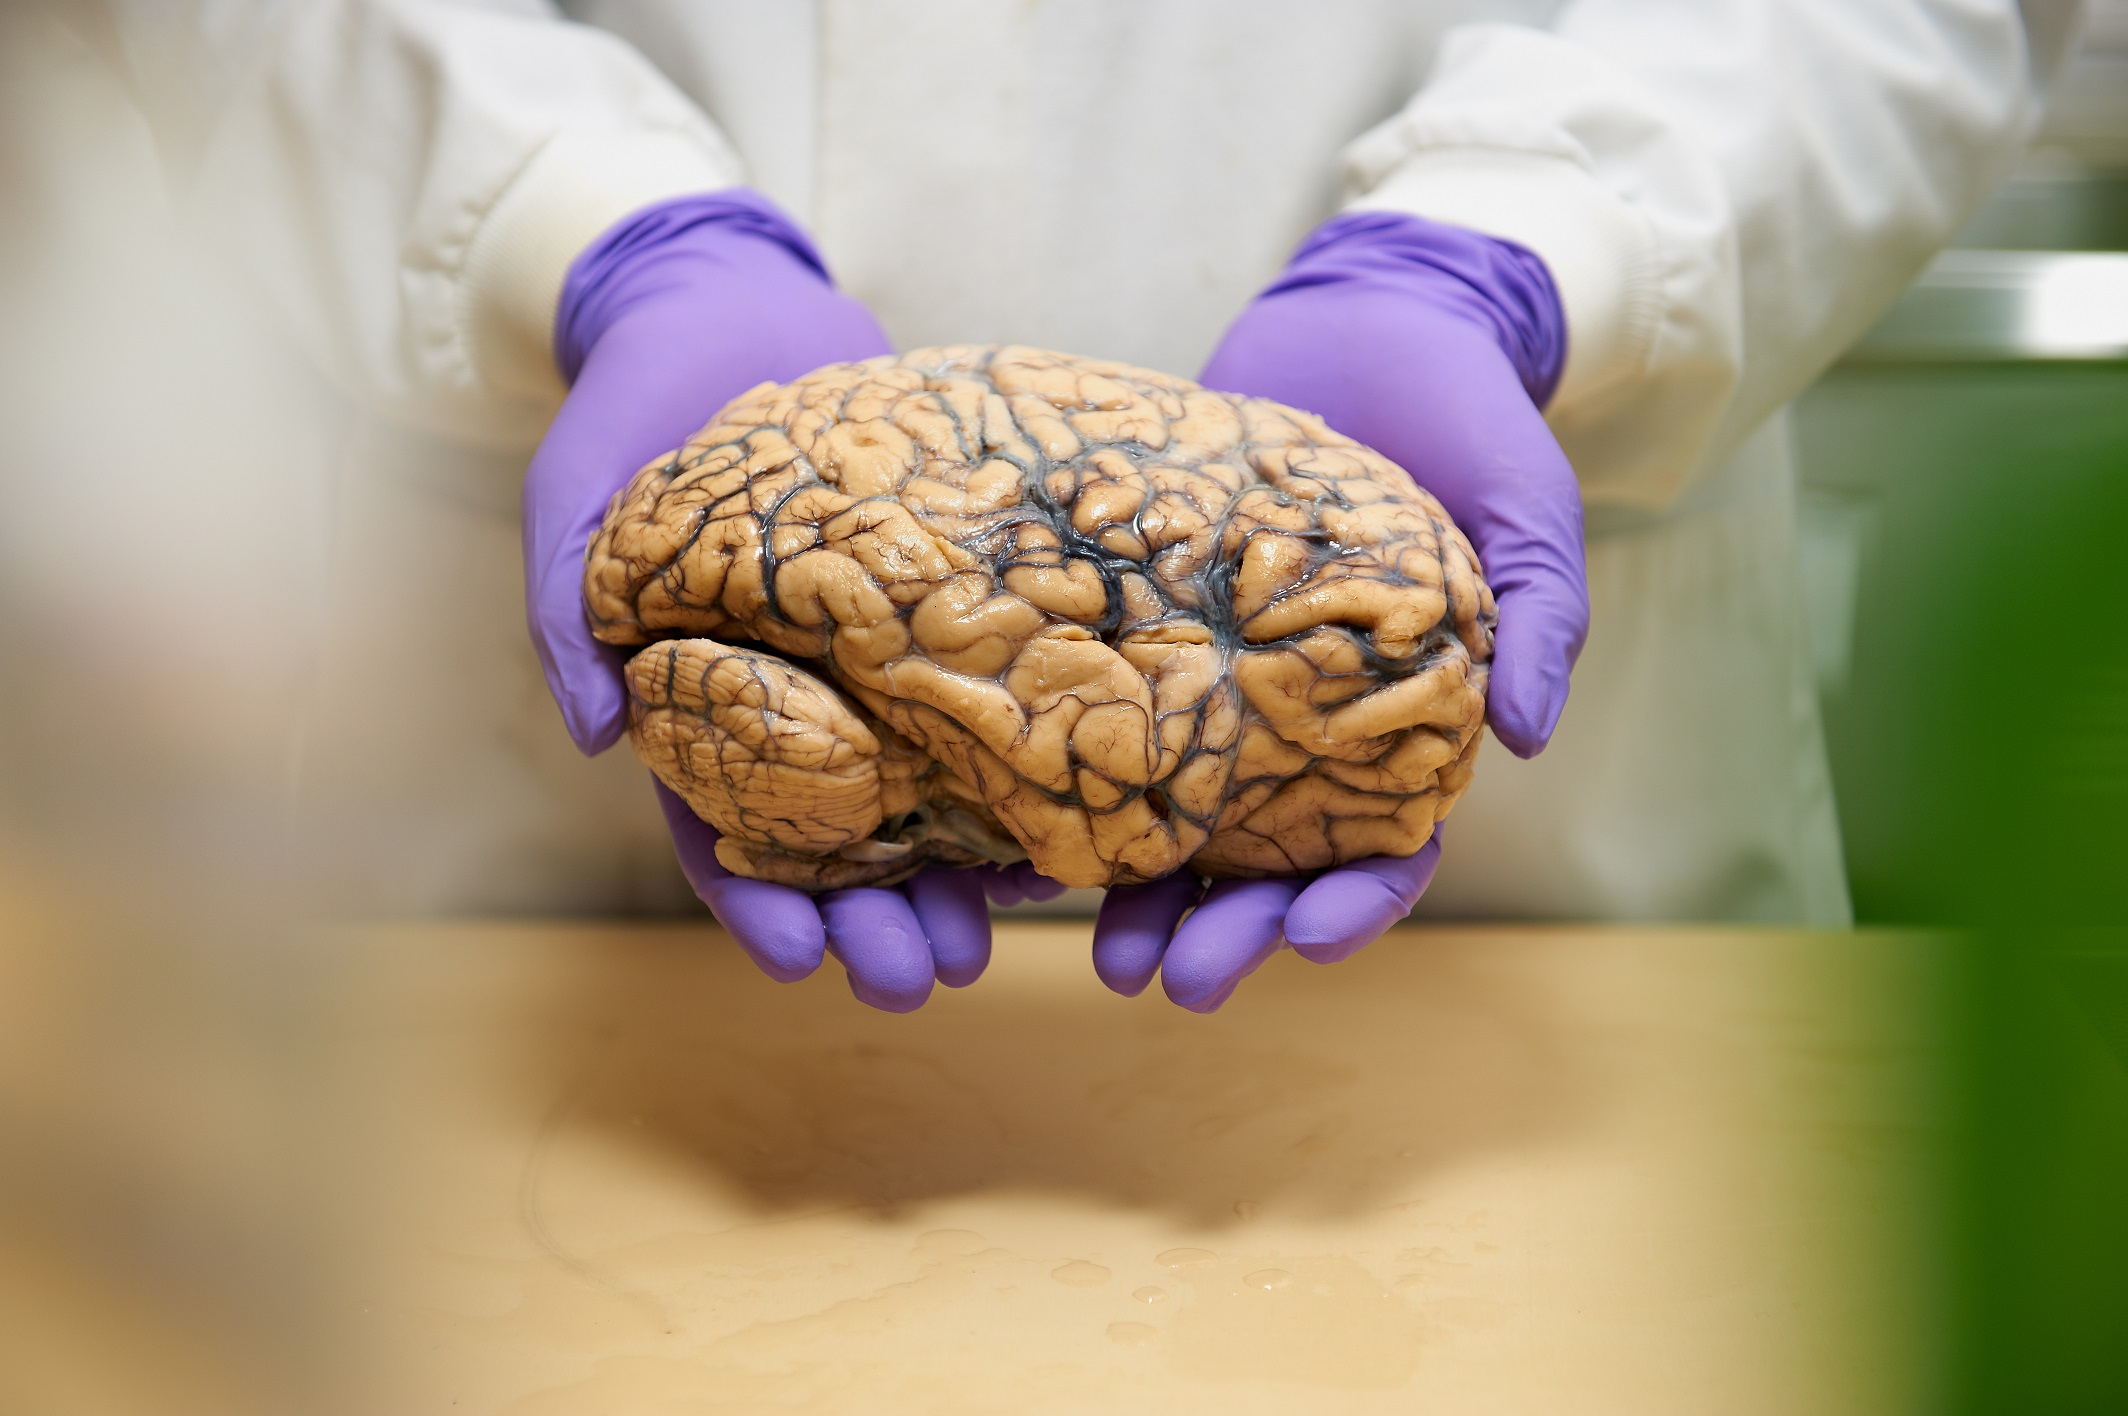 Manchester dementia researchers awarded £200,000 funding boost |  Alzheimer's Research UK